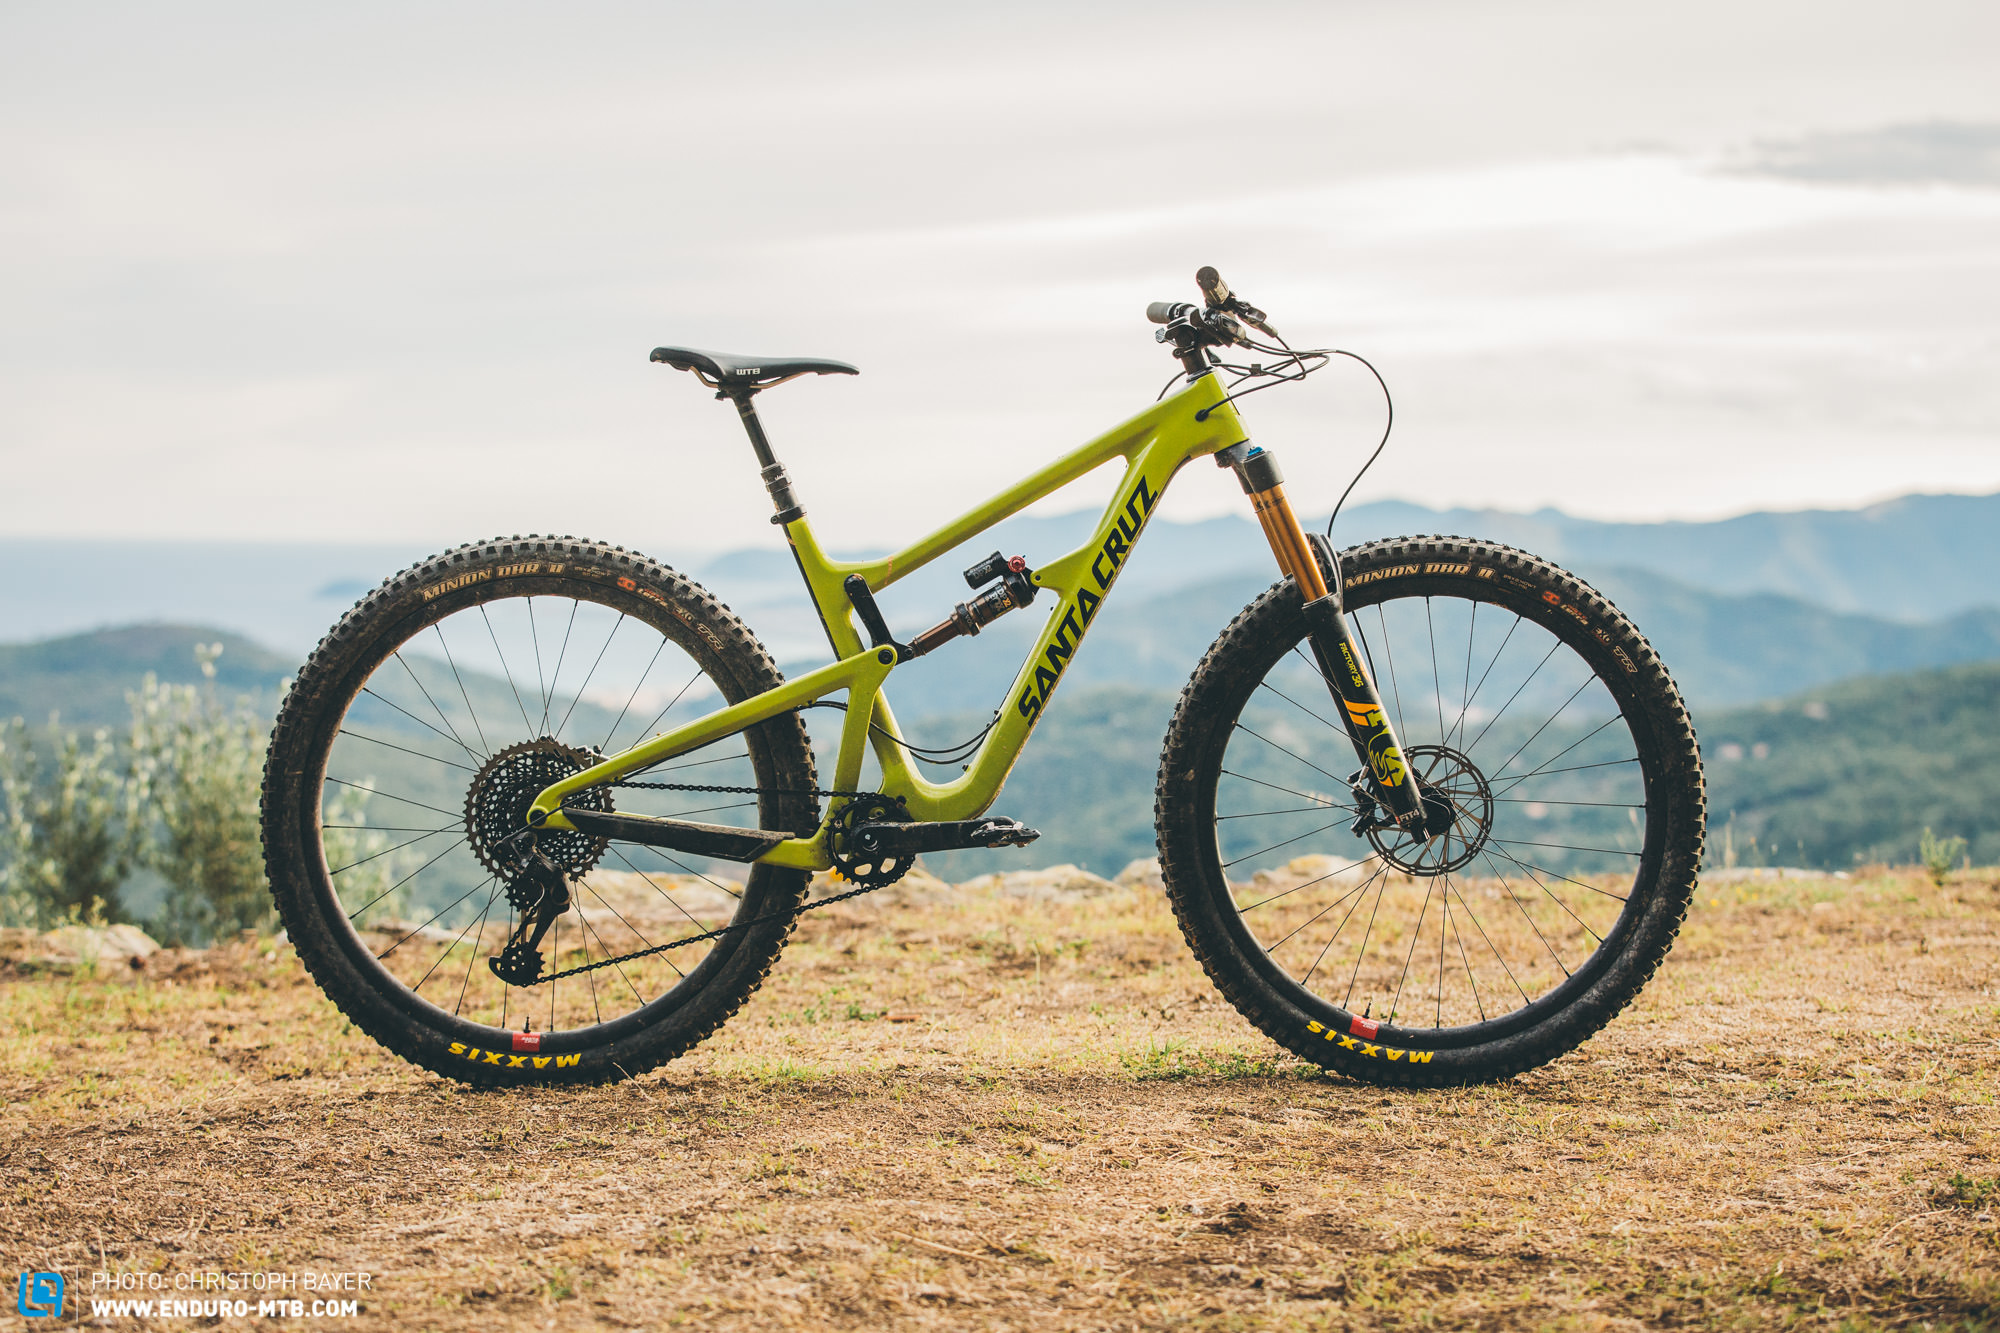 ENDURO's Most Wanted List: The hottest bikes from 2017 | ENDURO Mountainbike Magazine